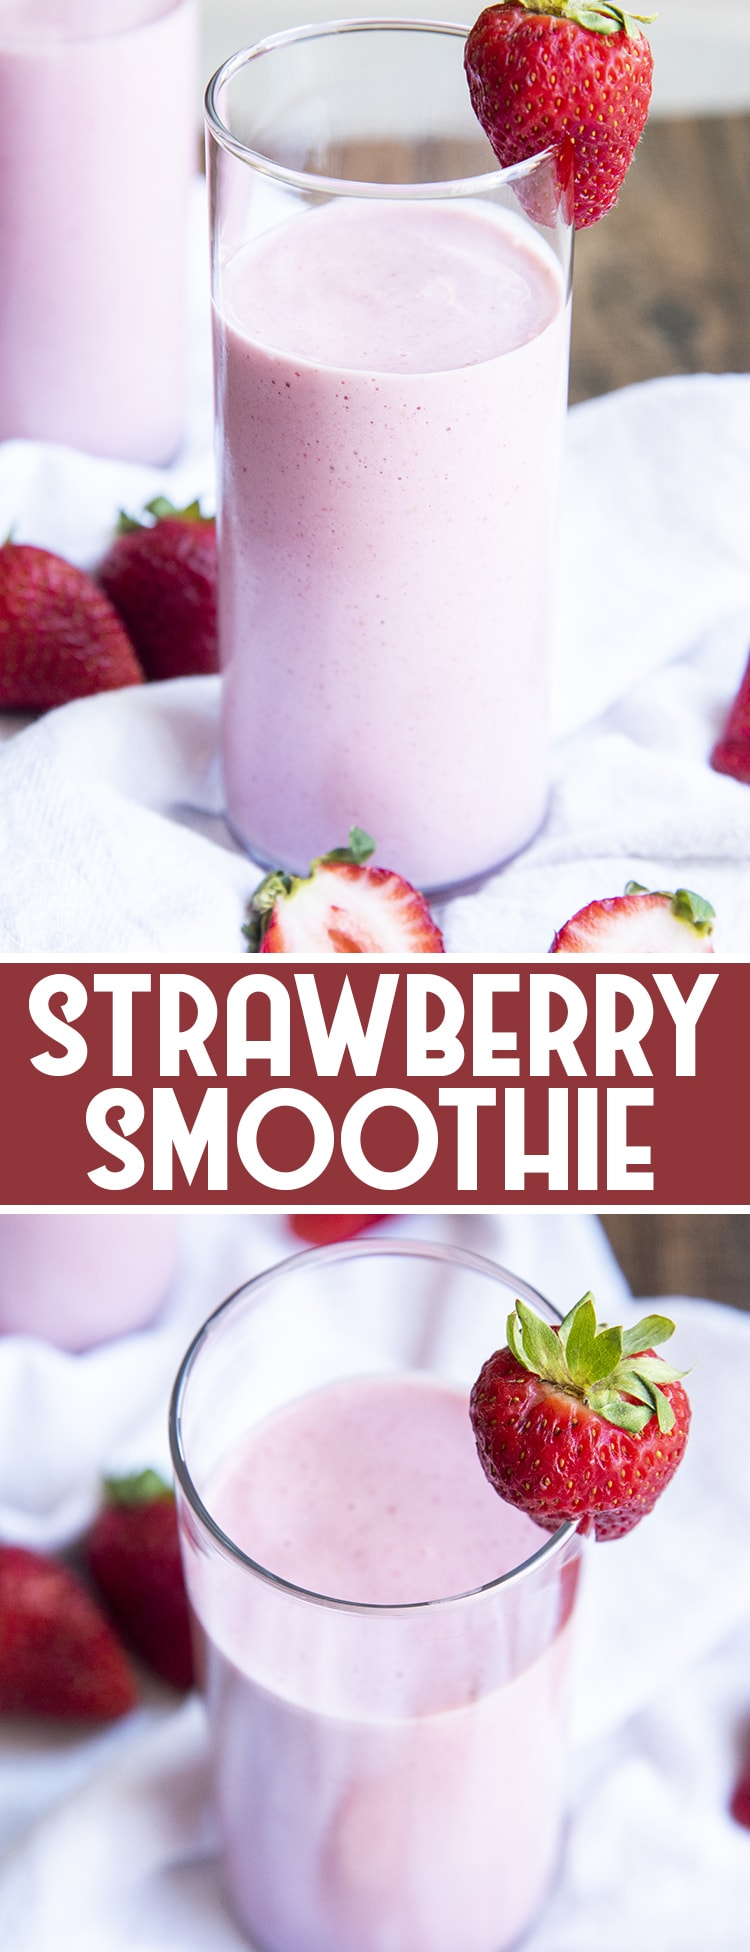 This strawberry smoothie is a fantastic way to start the day, it's sweet, only a few ingredients and comes together in just minutes for a breakfast that is not only good for you, but also delicious!